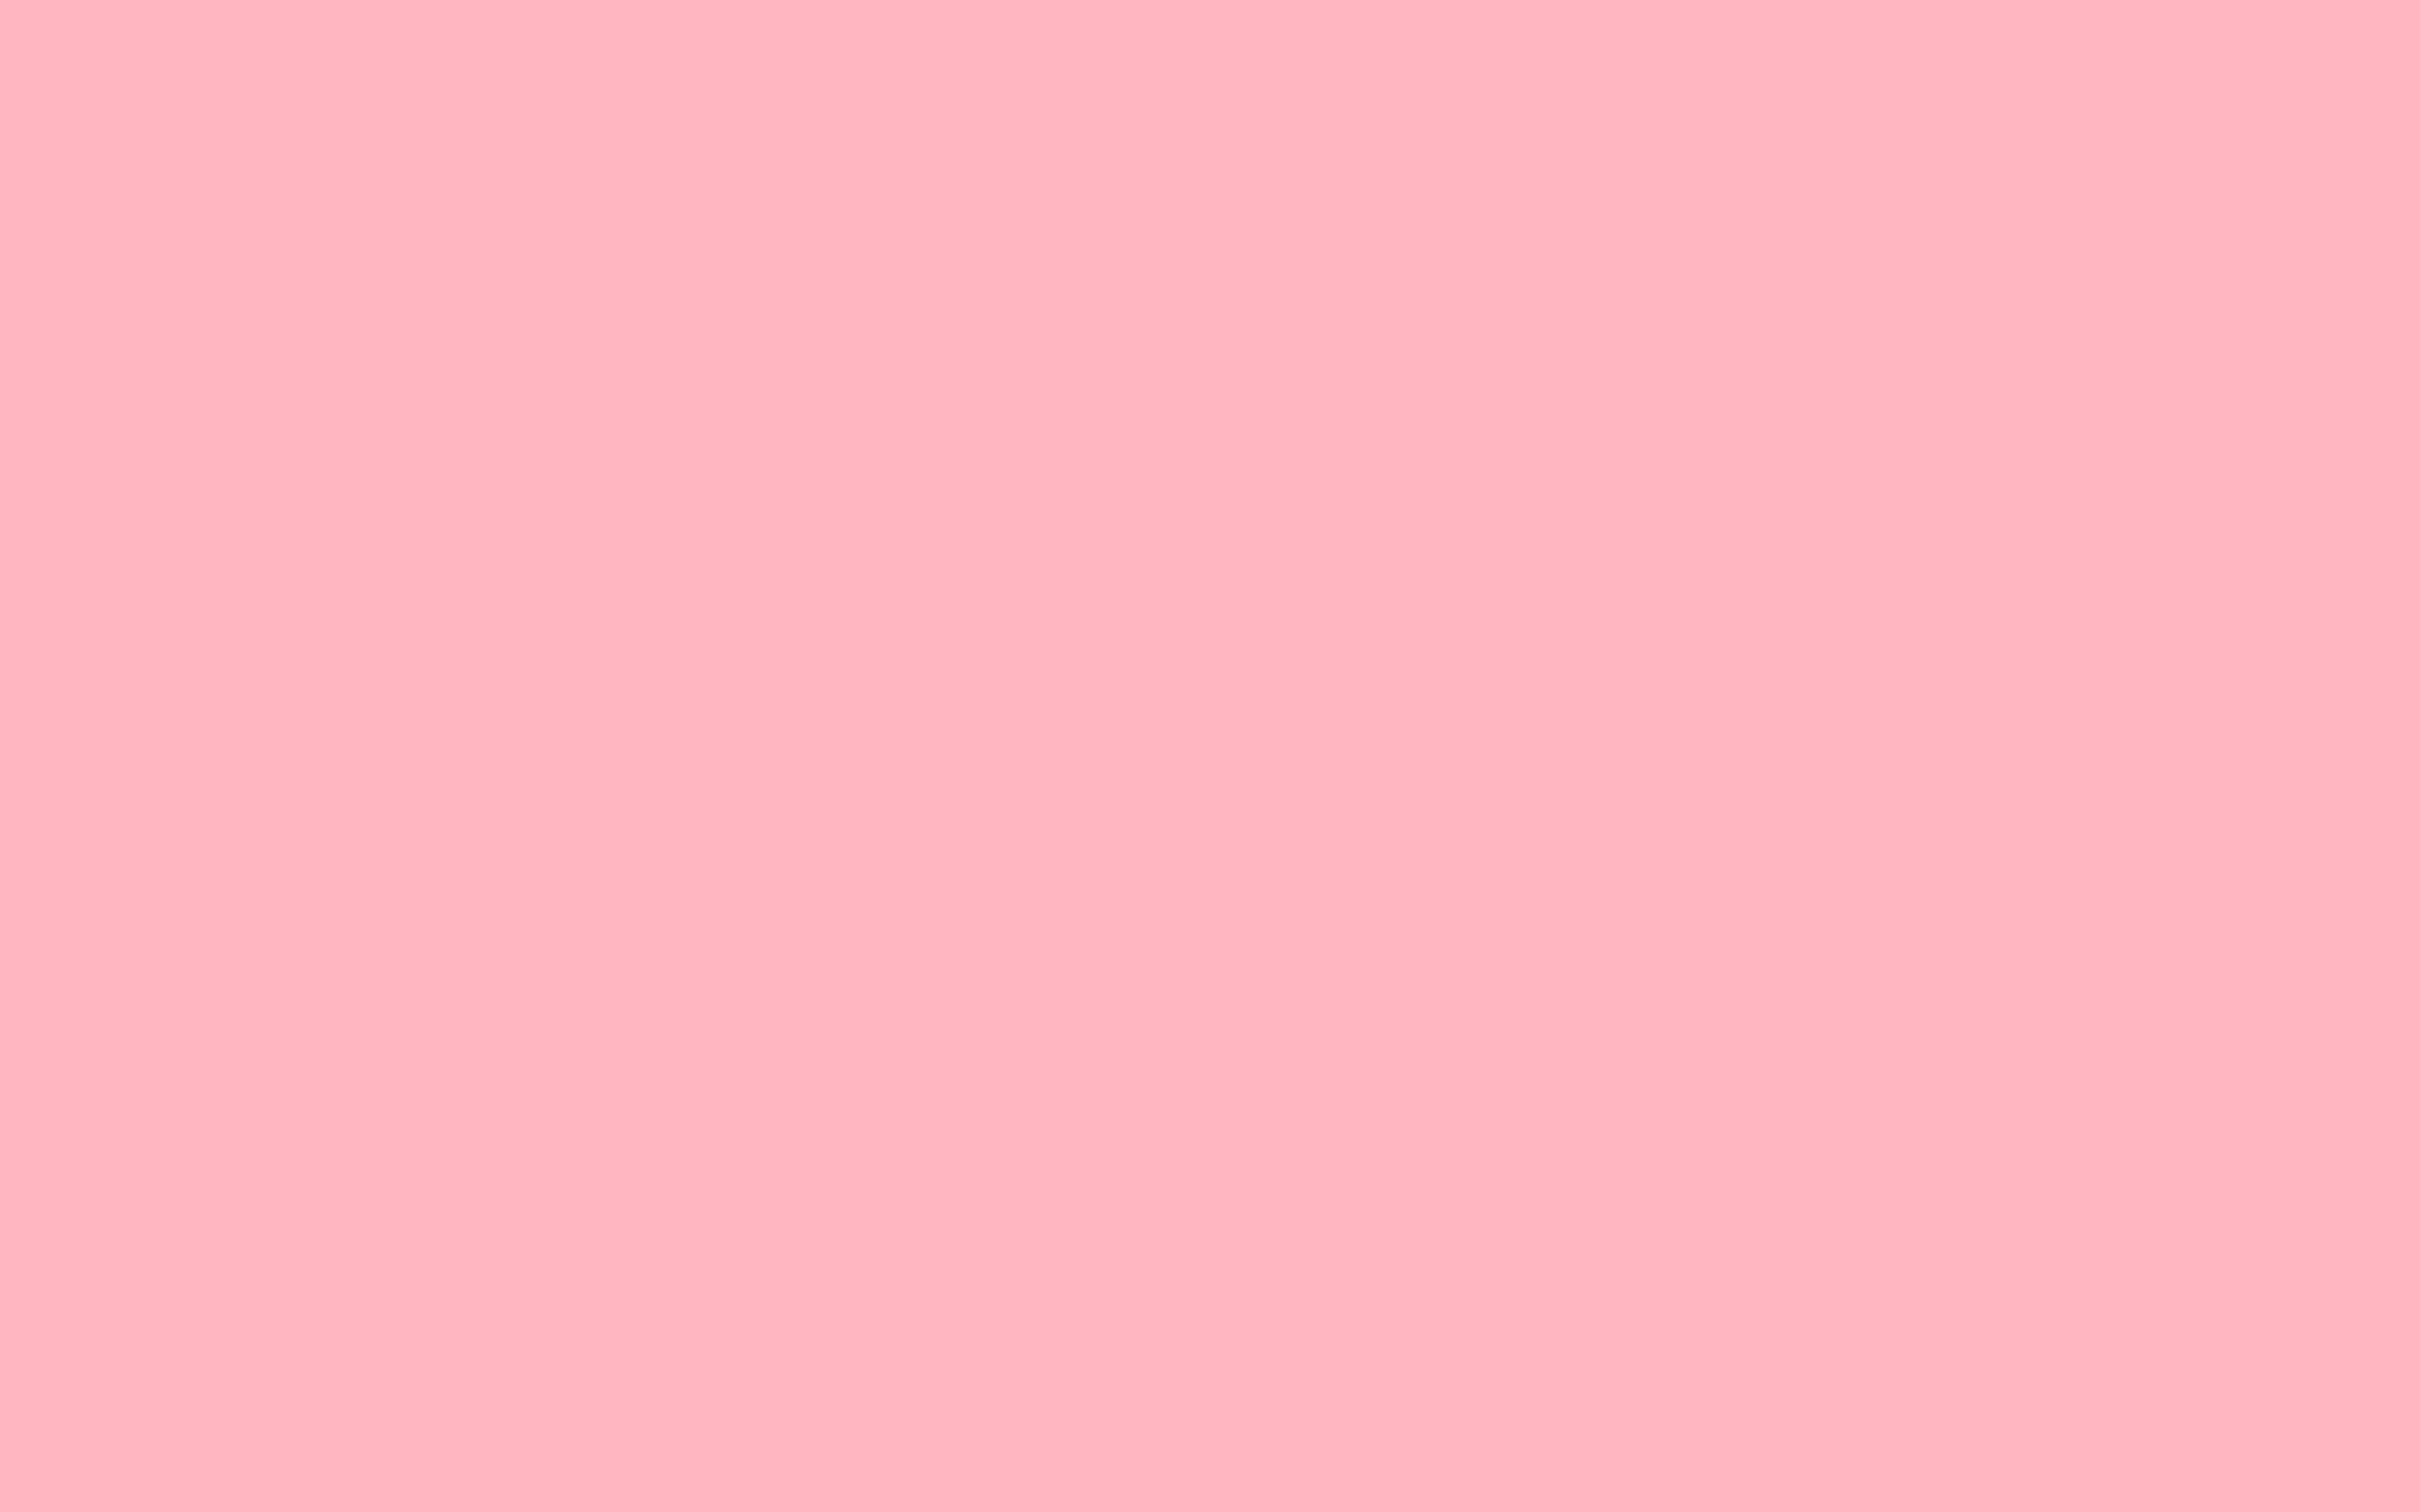 Iphone 7 Plus Hd Wallpaper Original Soft Pink Wallpaper 183 ①